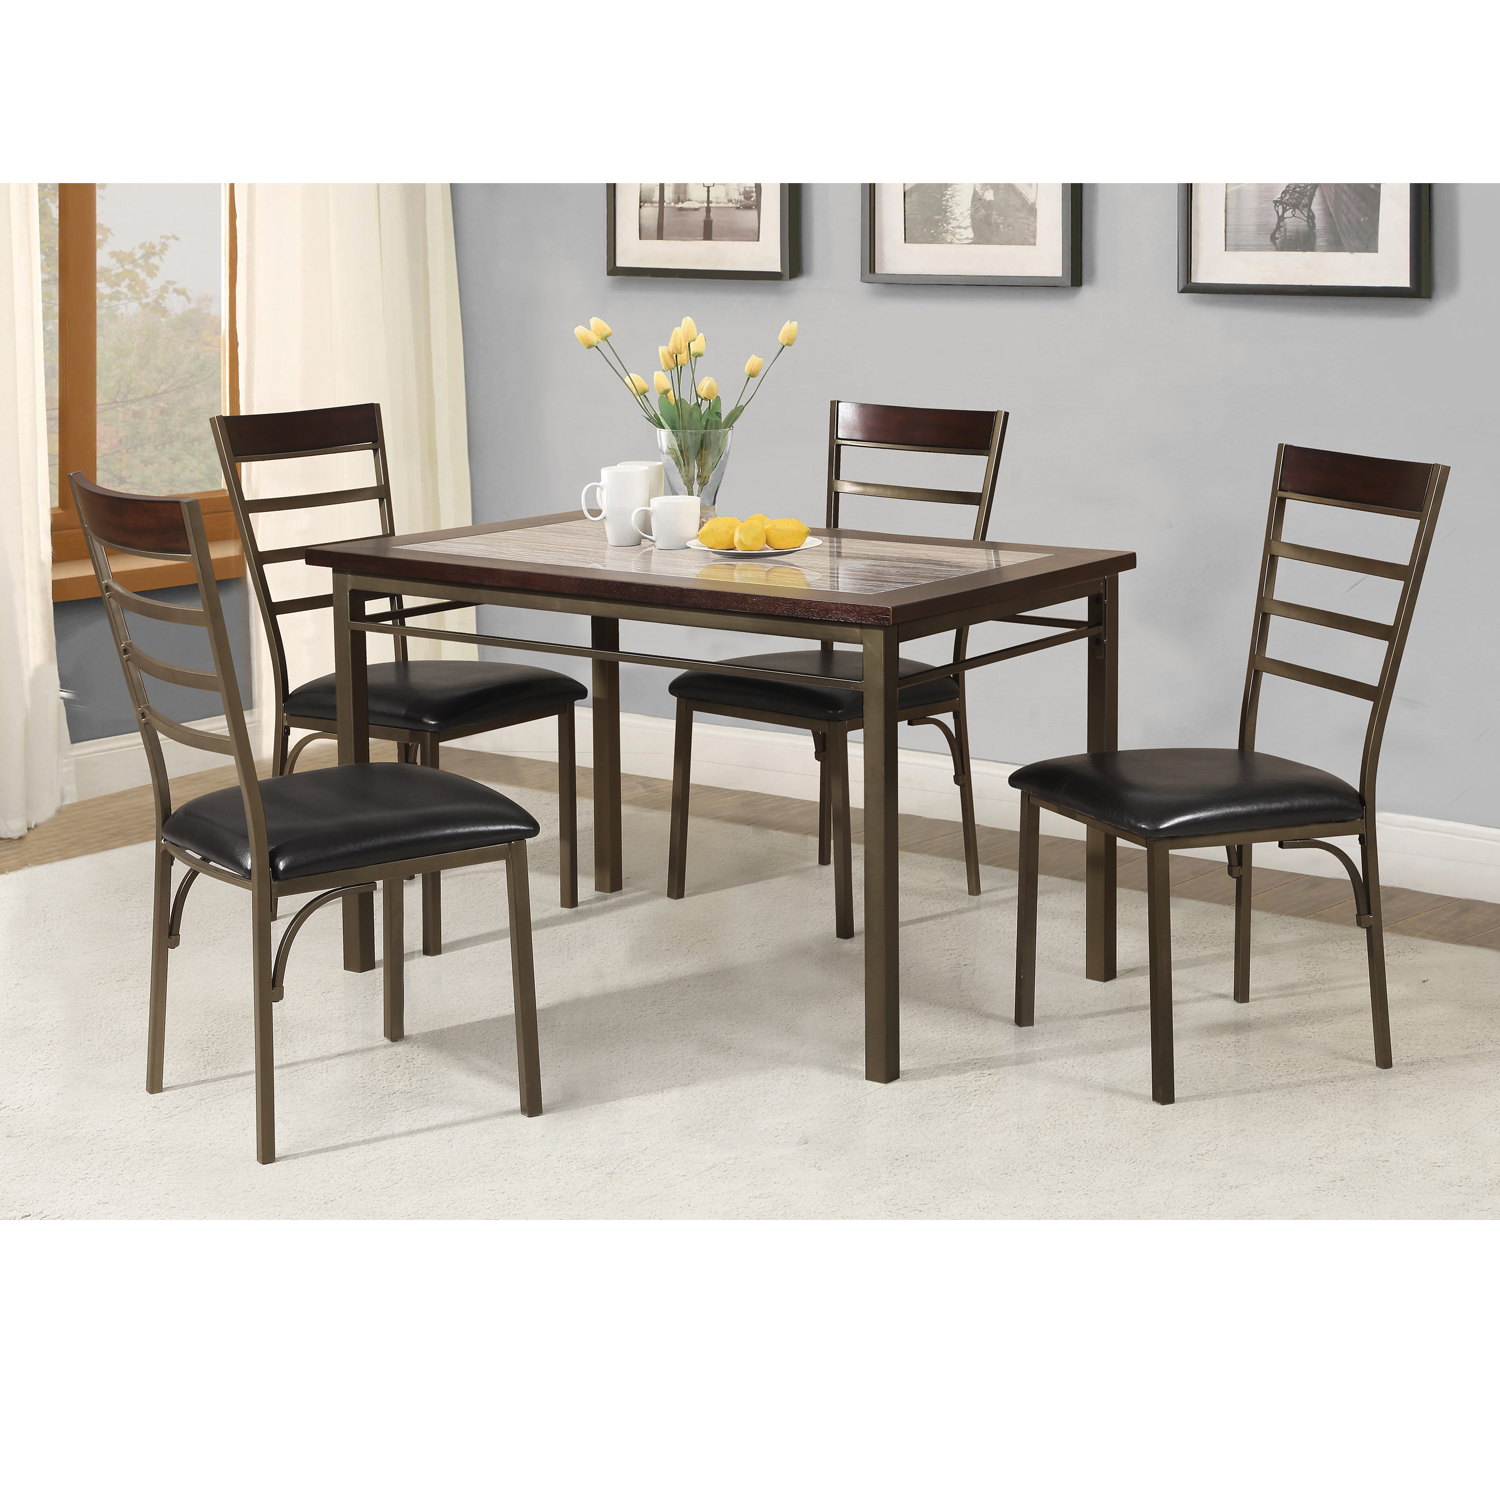 dining table with insert oak home source faux marble insert dining table walmartcom